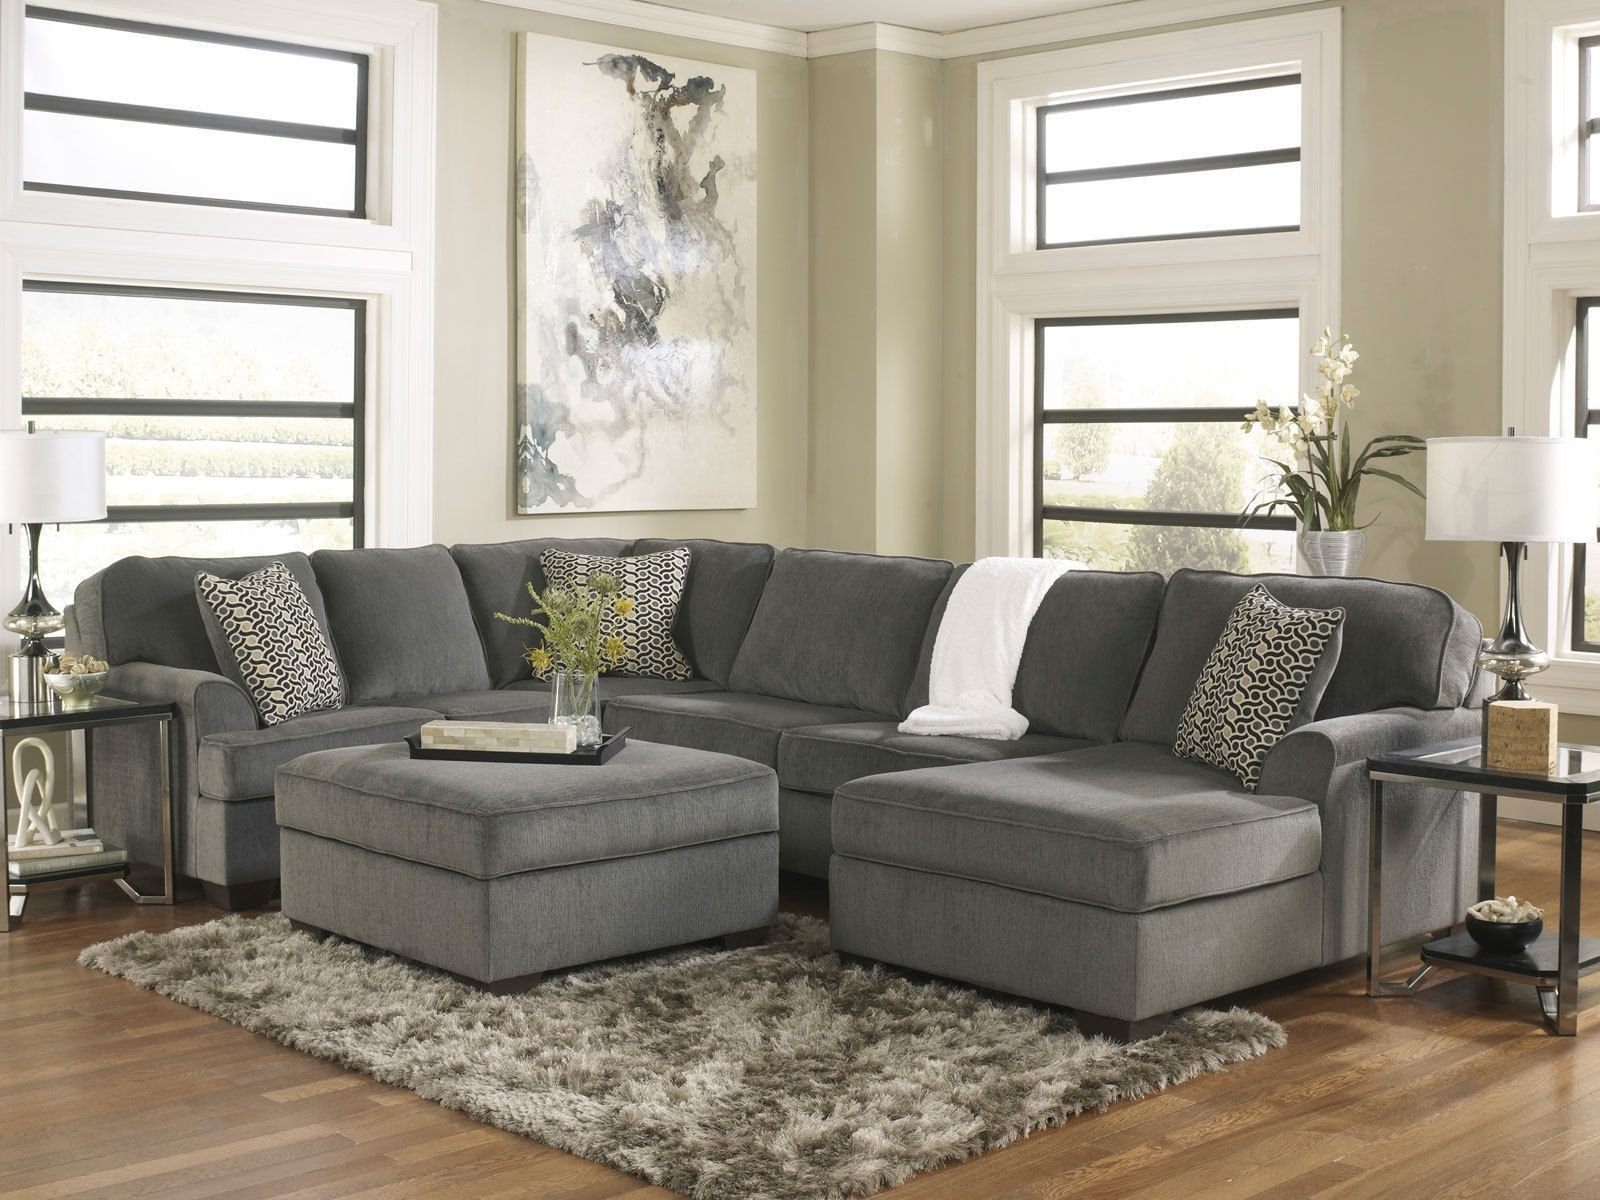 The Kittredge 3 Piece Sectional From Ashley Furniture Homestore Throughout 10X8 Sectional Sofas (Image 10 of 10)